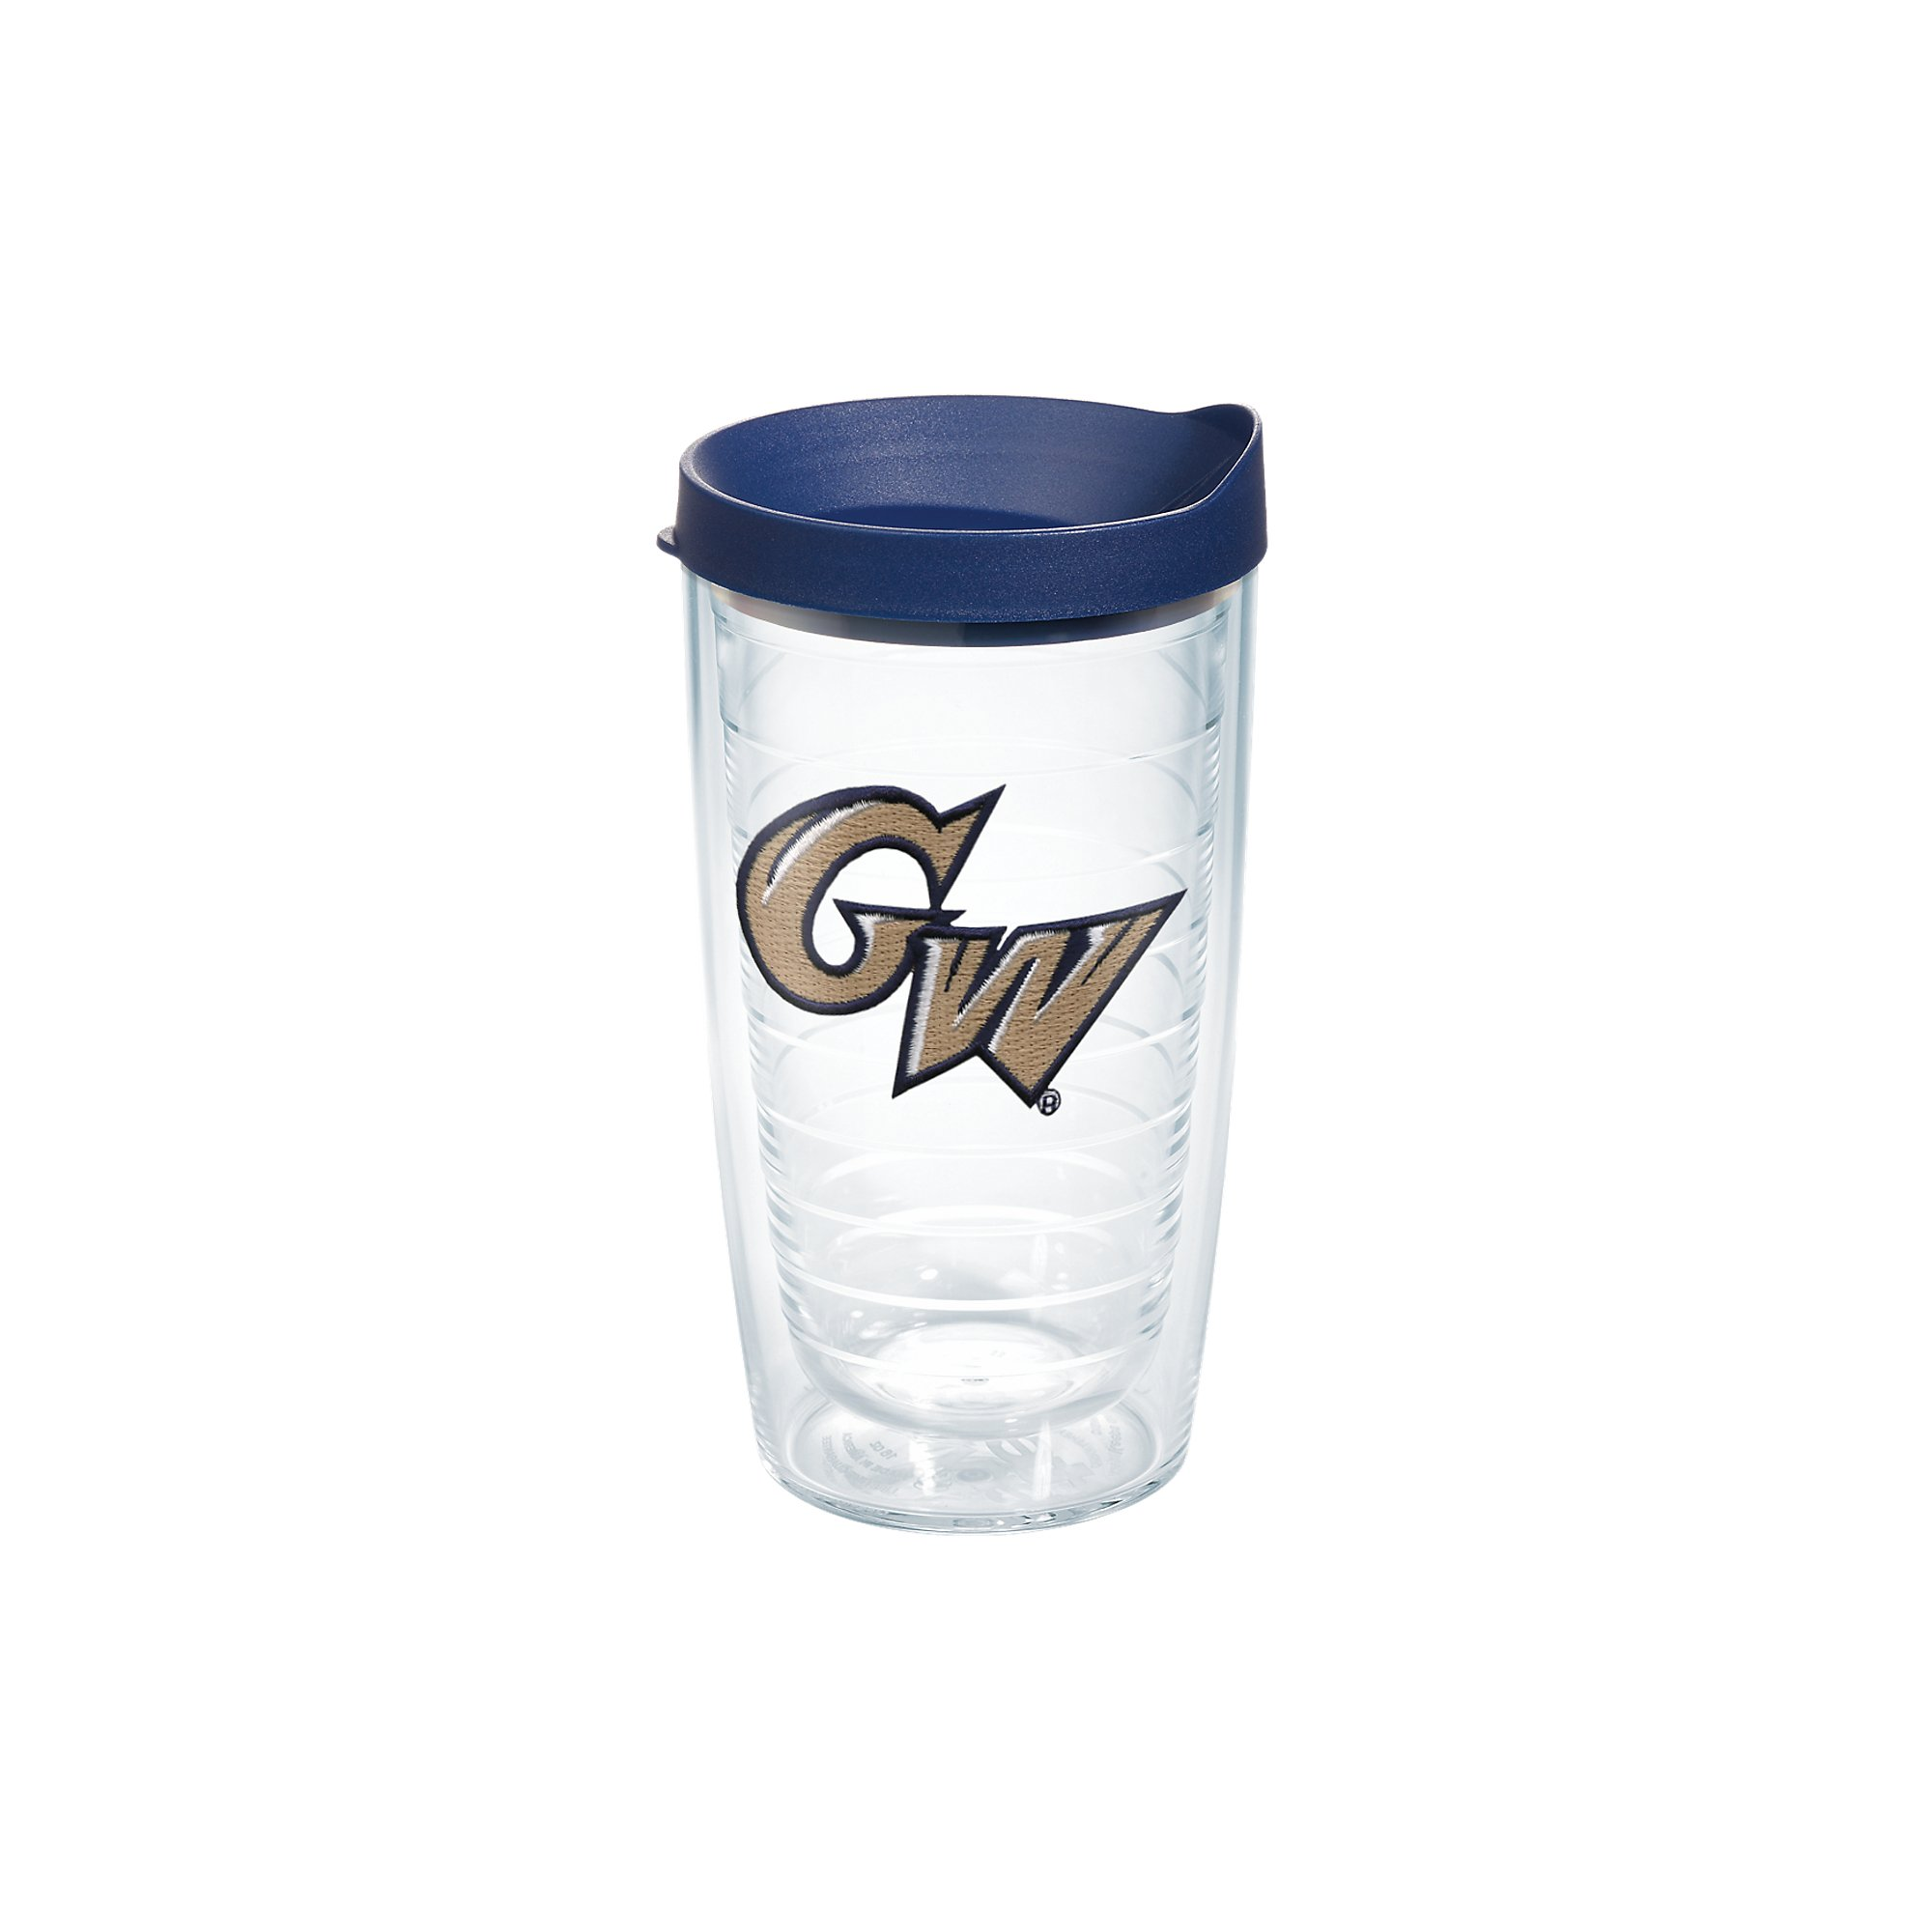 Tervis 1083497 George Washington Colonials Logo Tumbler with Emblem and Navy Lid 16oz, Clear